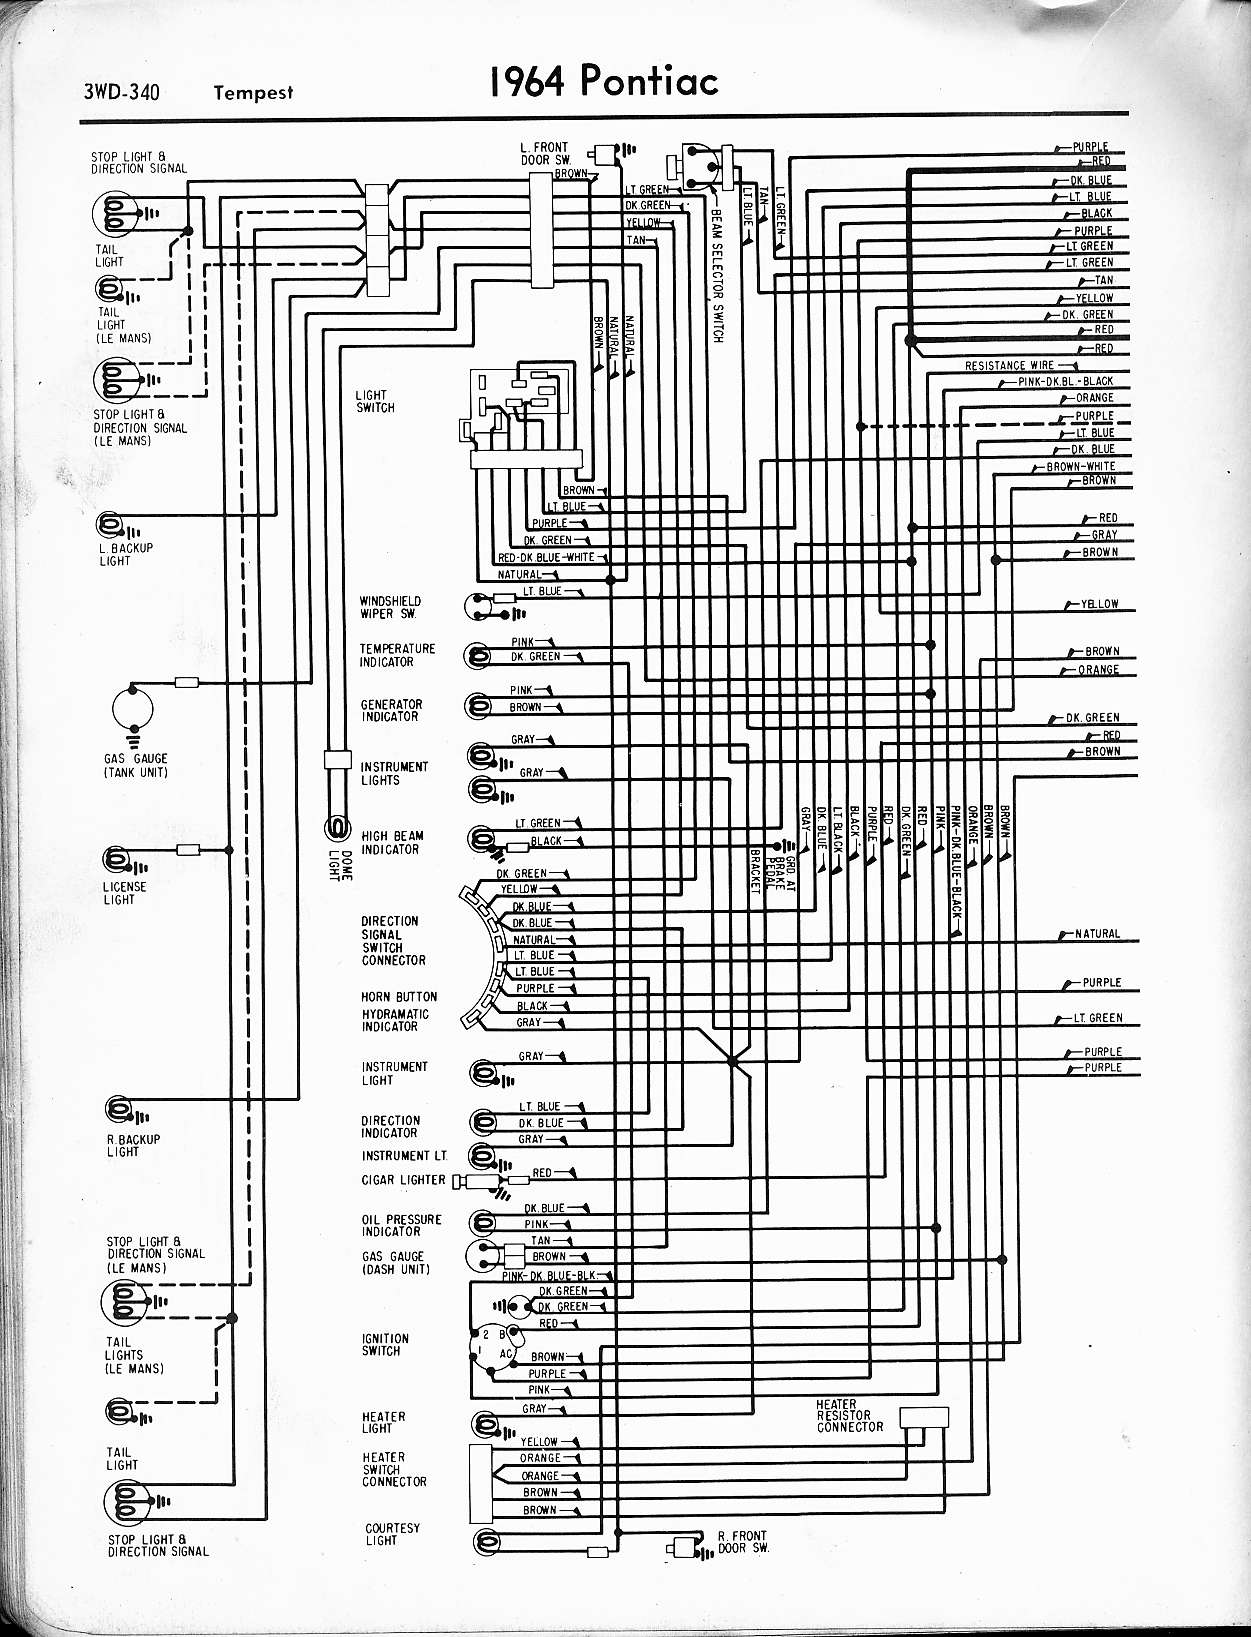 Outstanding 1965 4 Wire Alternator Diagram Wiring Diagram Wiring Cloud Funidienstapotheekhoekschewaardnl